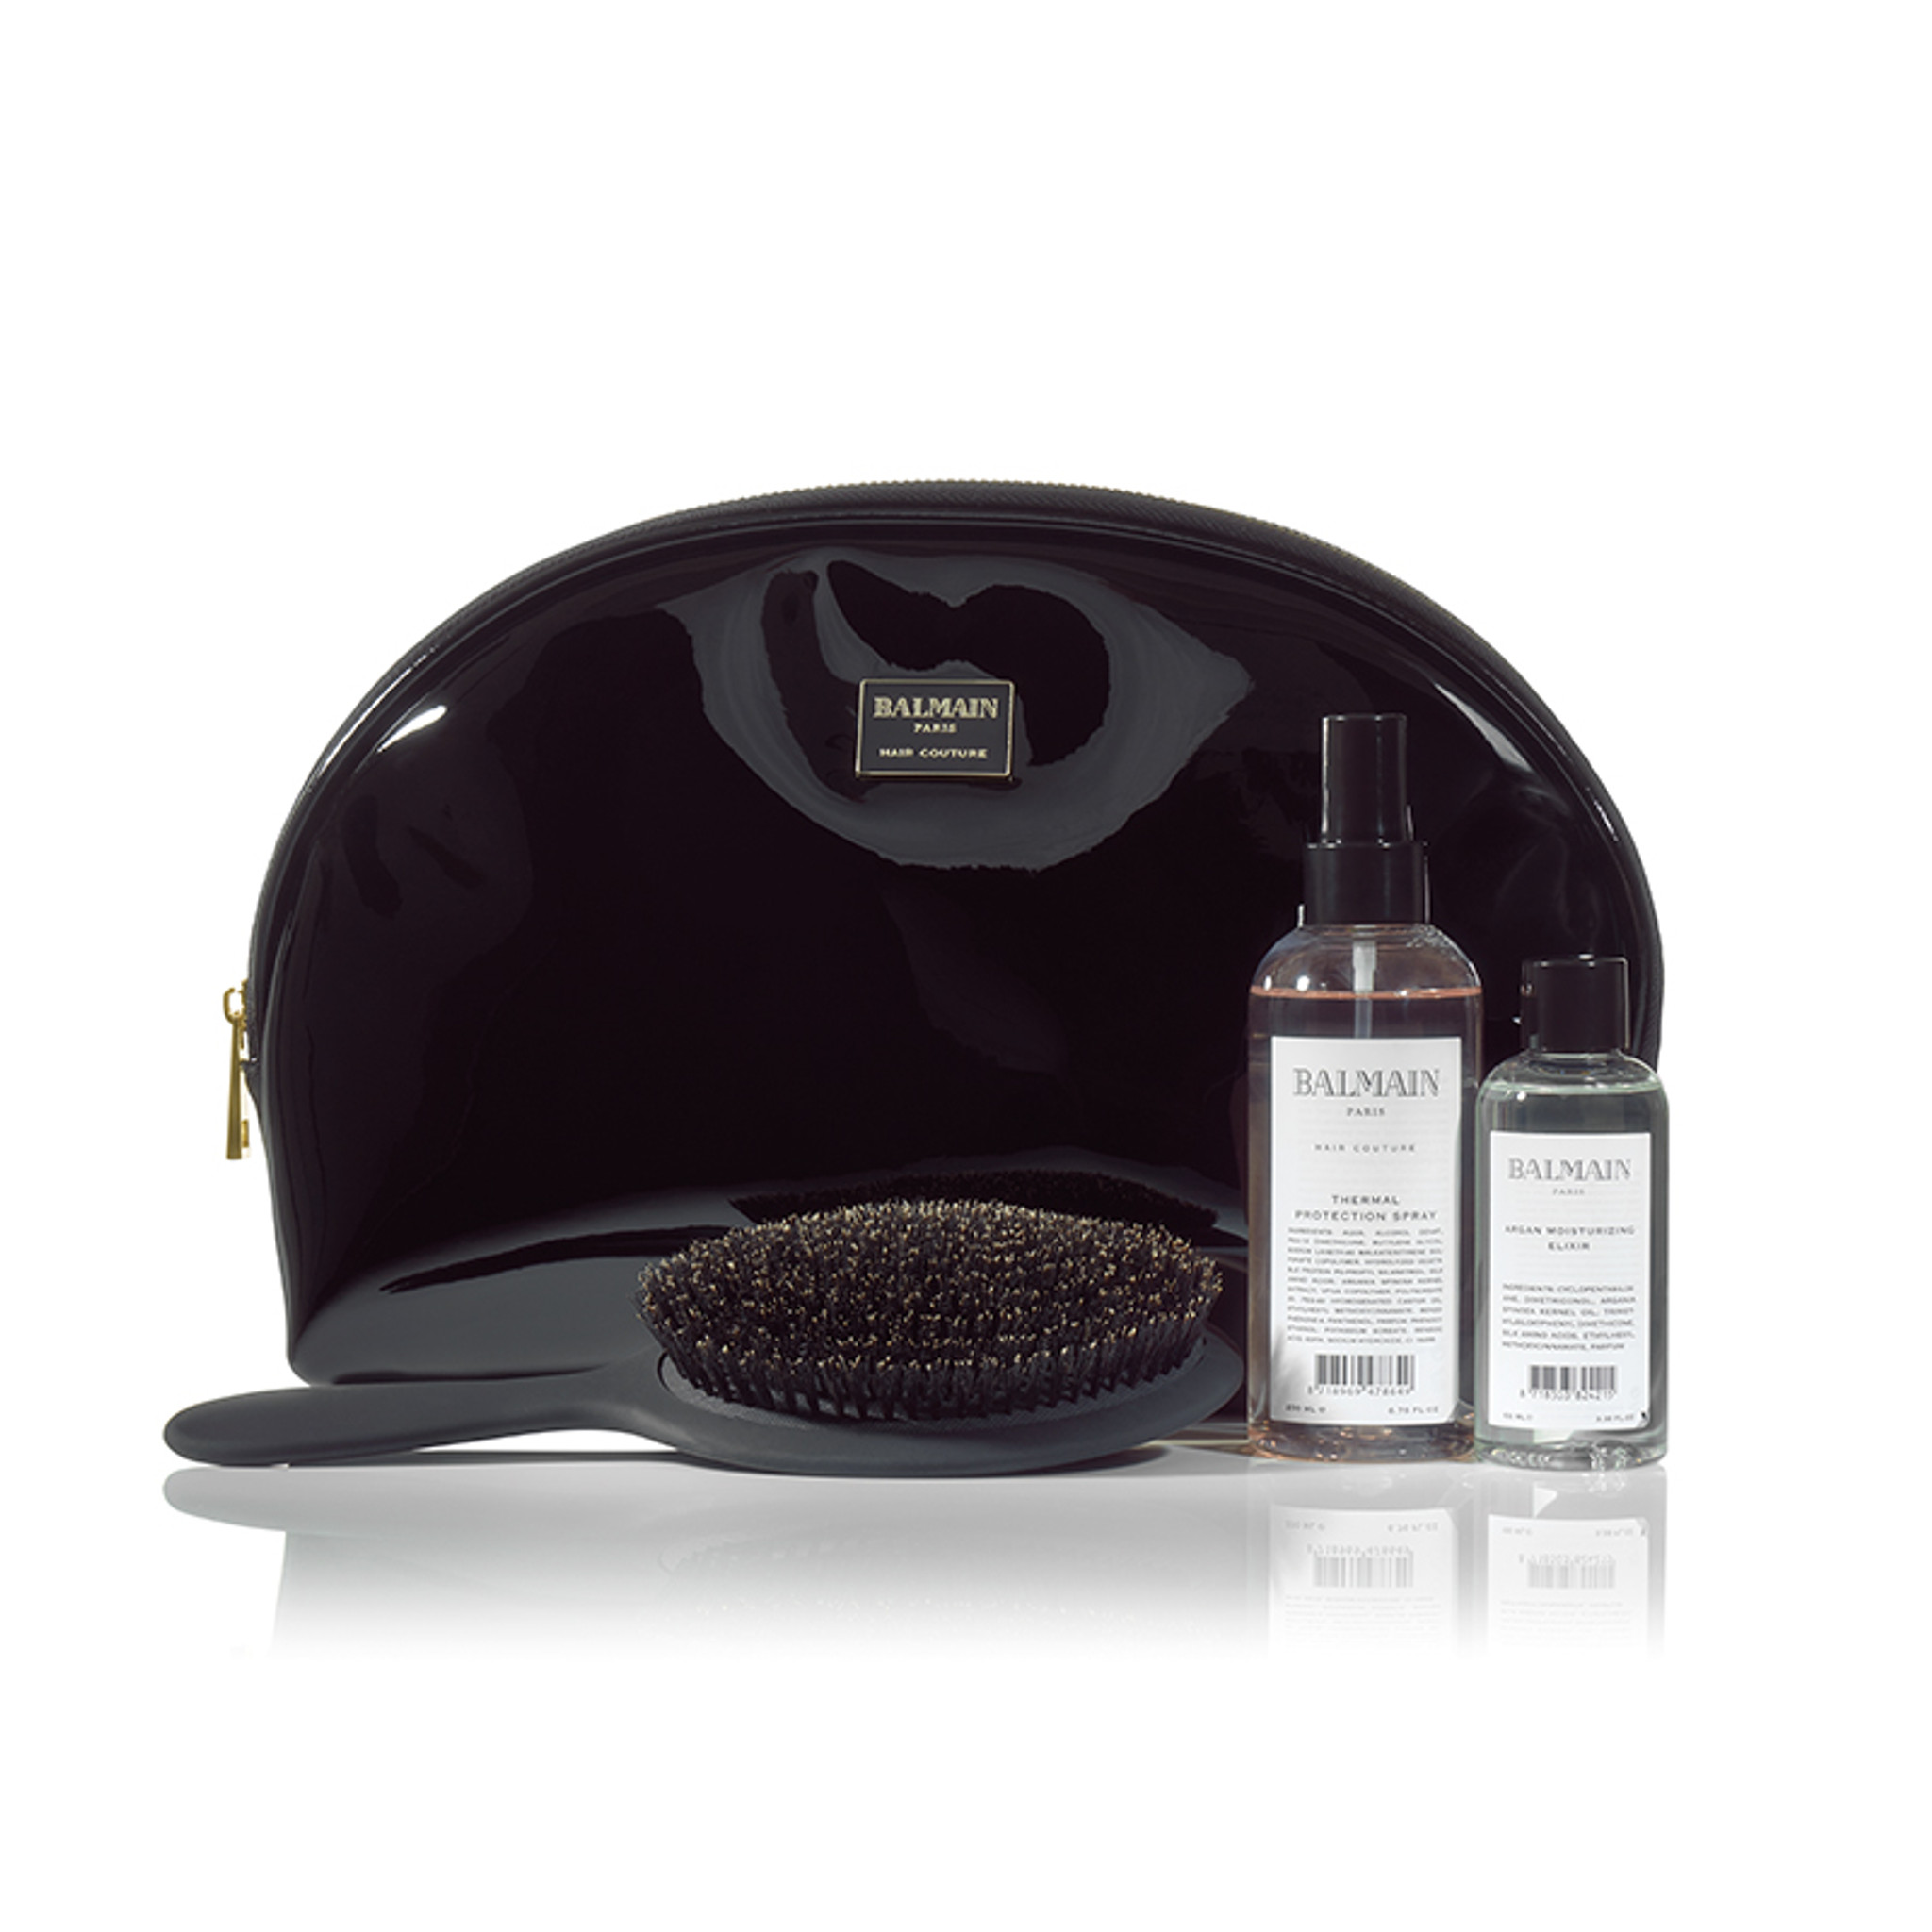 LIMITED EDITION - PATENT LEATHER POUCH